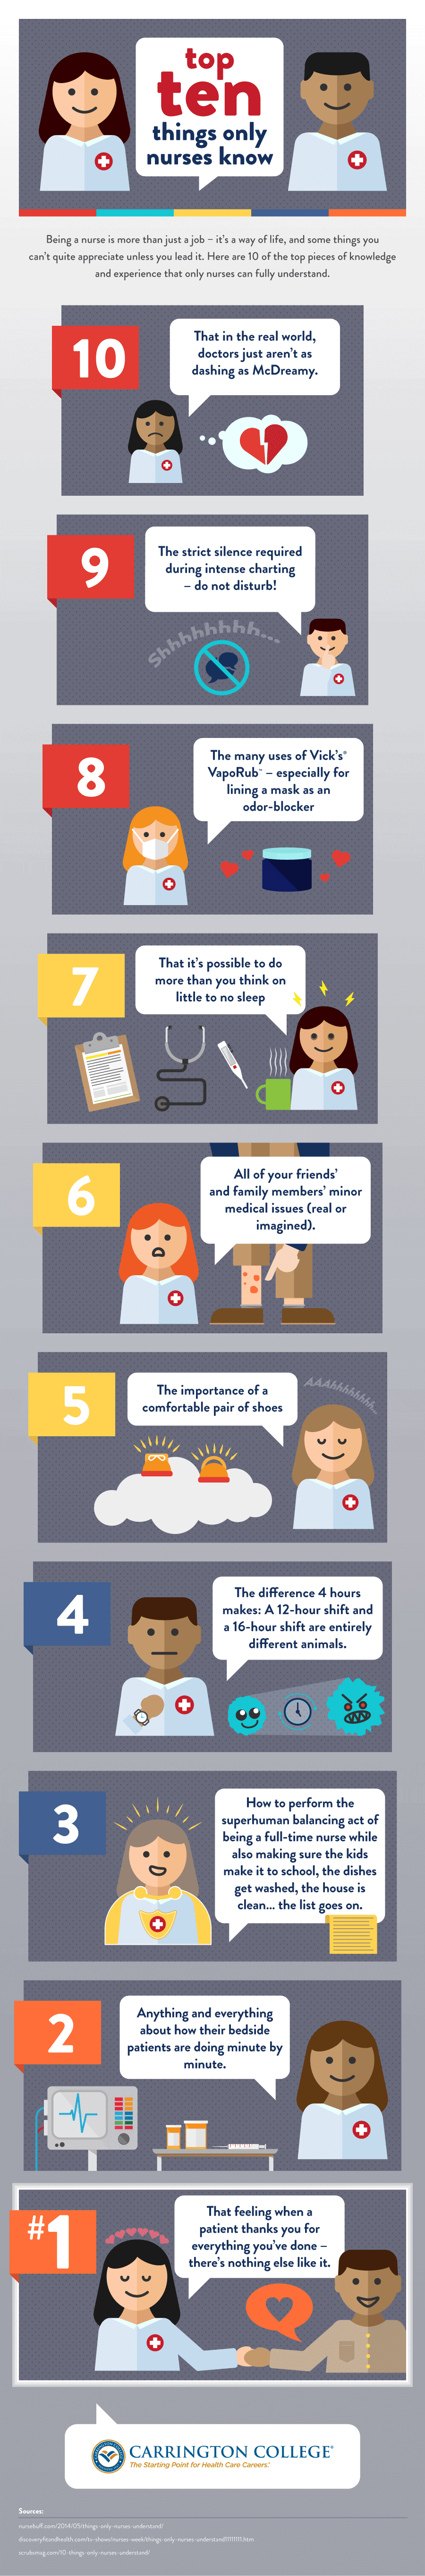 Top-10-Only-Nurses-Know-Infographic